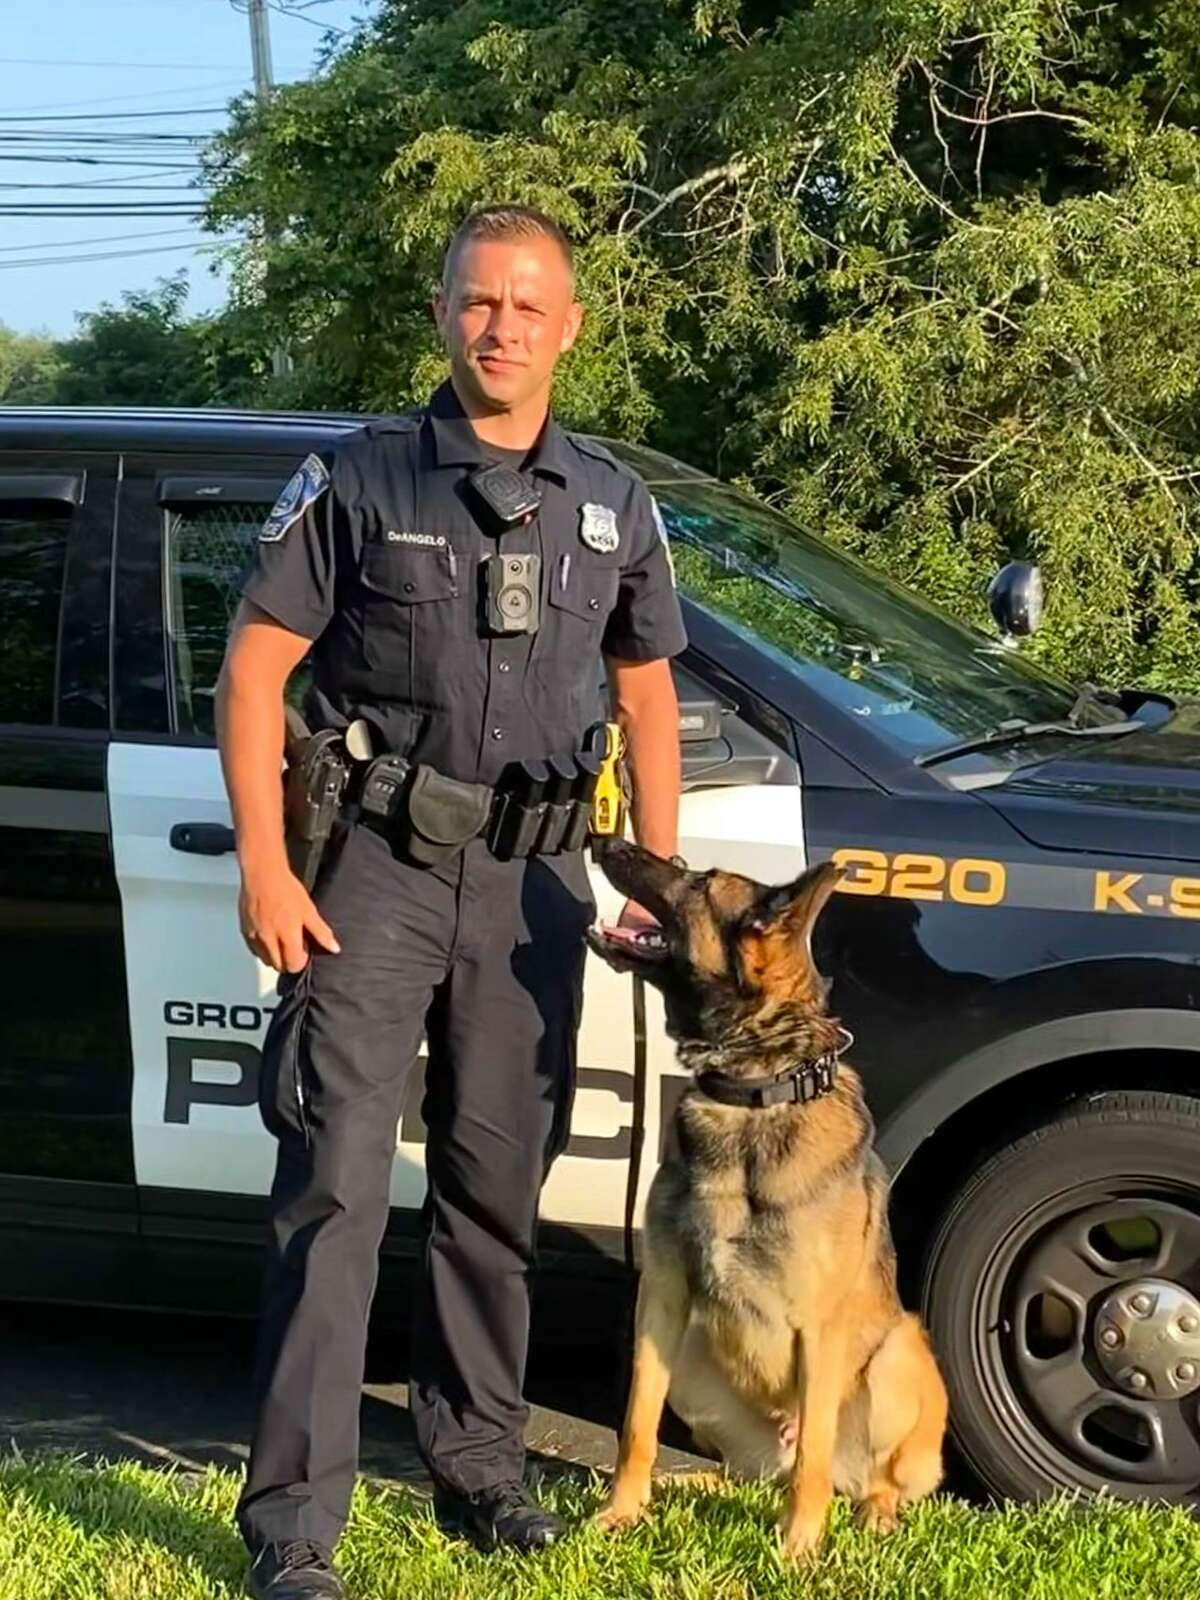 Officer Tyler DeAngelo and police dog Jax recently graduated from a K-9 program. Jax is one of two police dogs to recently join the Groton, Conn., police force.